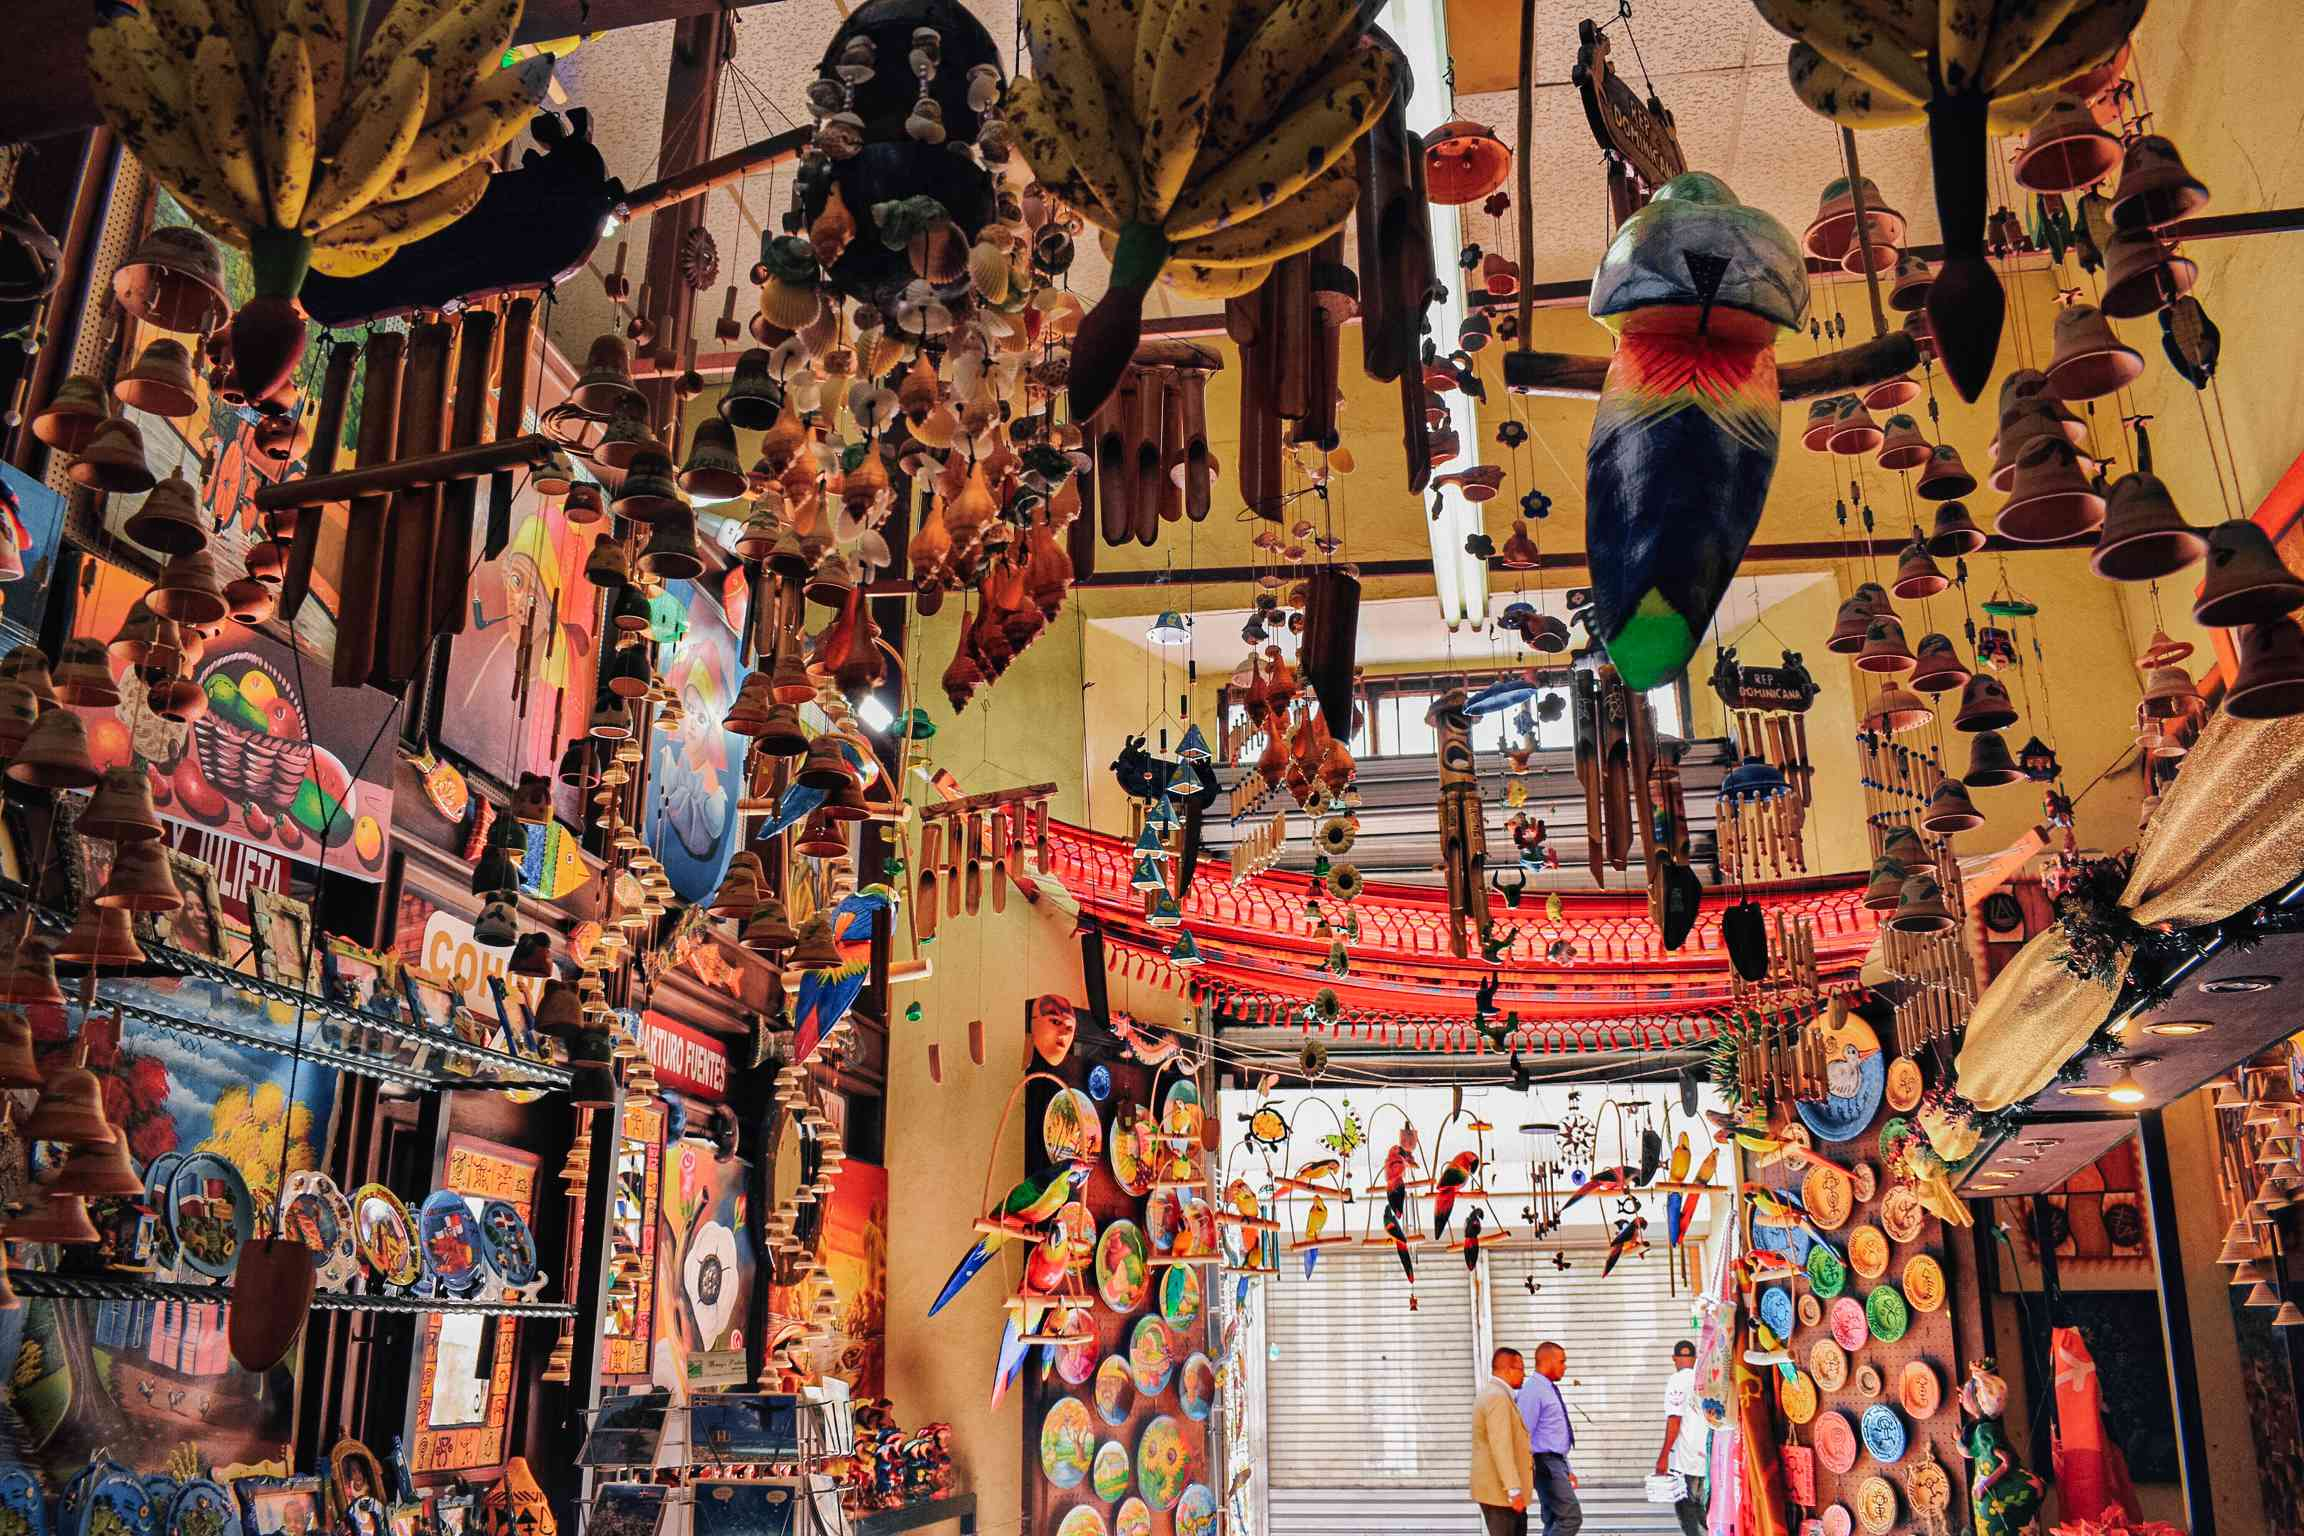 A shop filled with colorful handmade souveniers